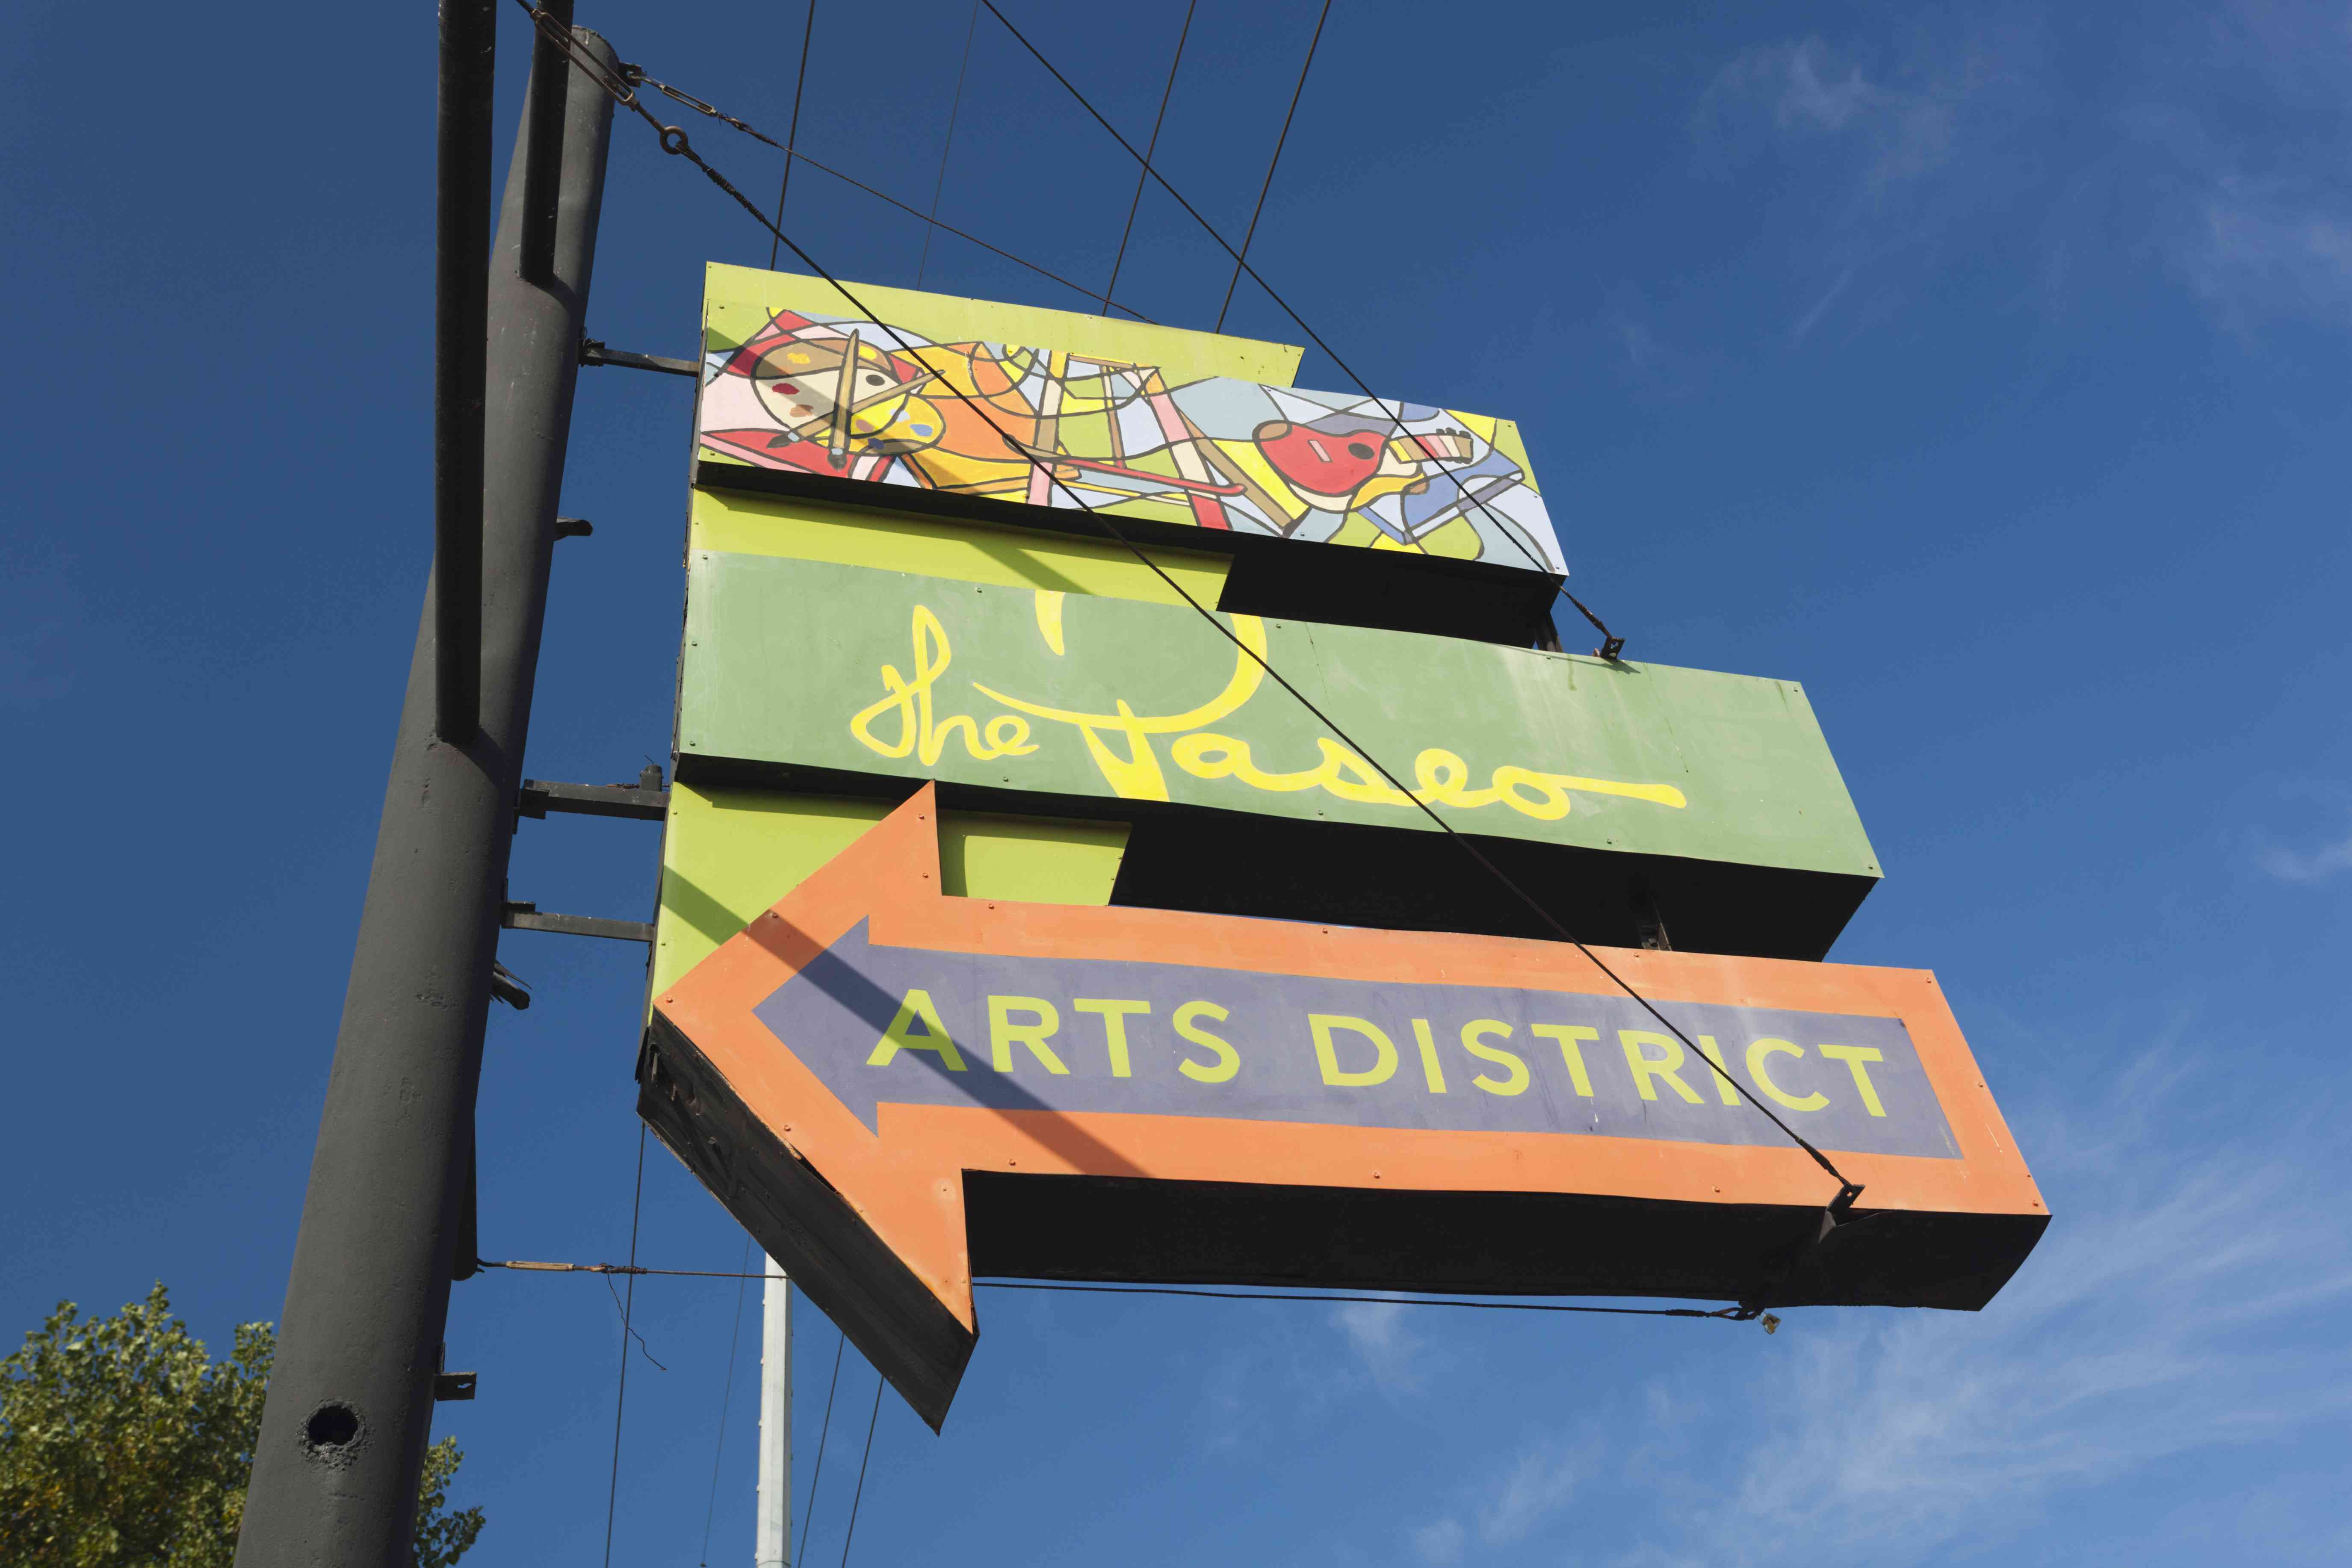 The Paseo, arts district, sign